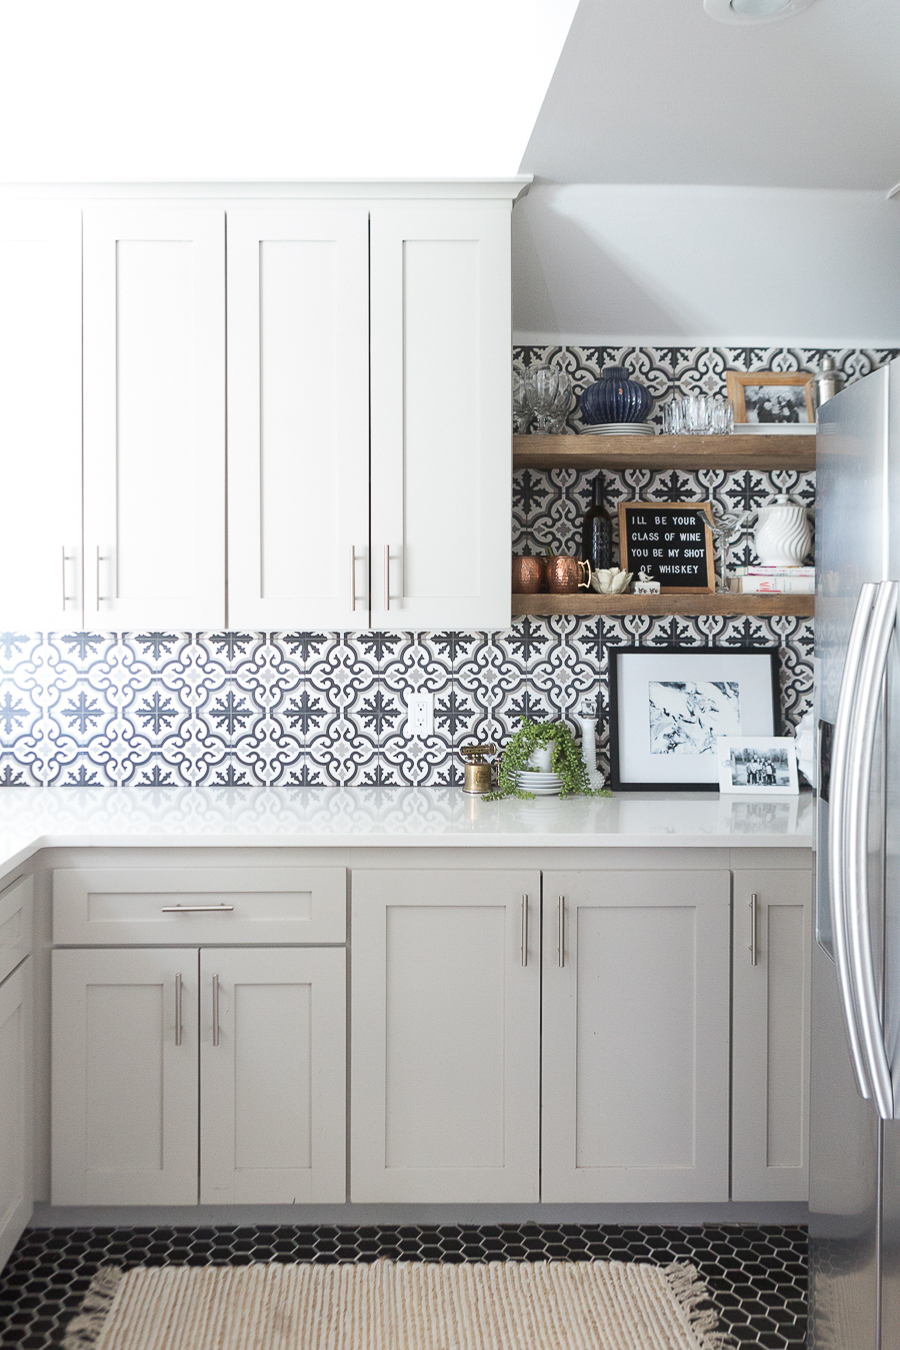 Affordable Ceramic Patterned Tile Backsplash And Flooring Cc And Mike